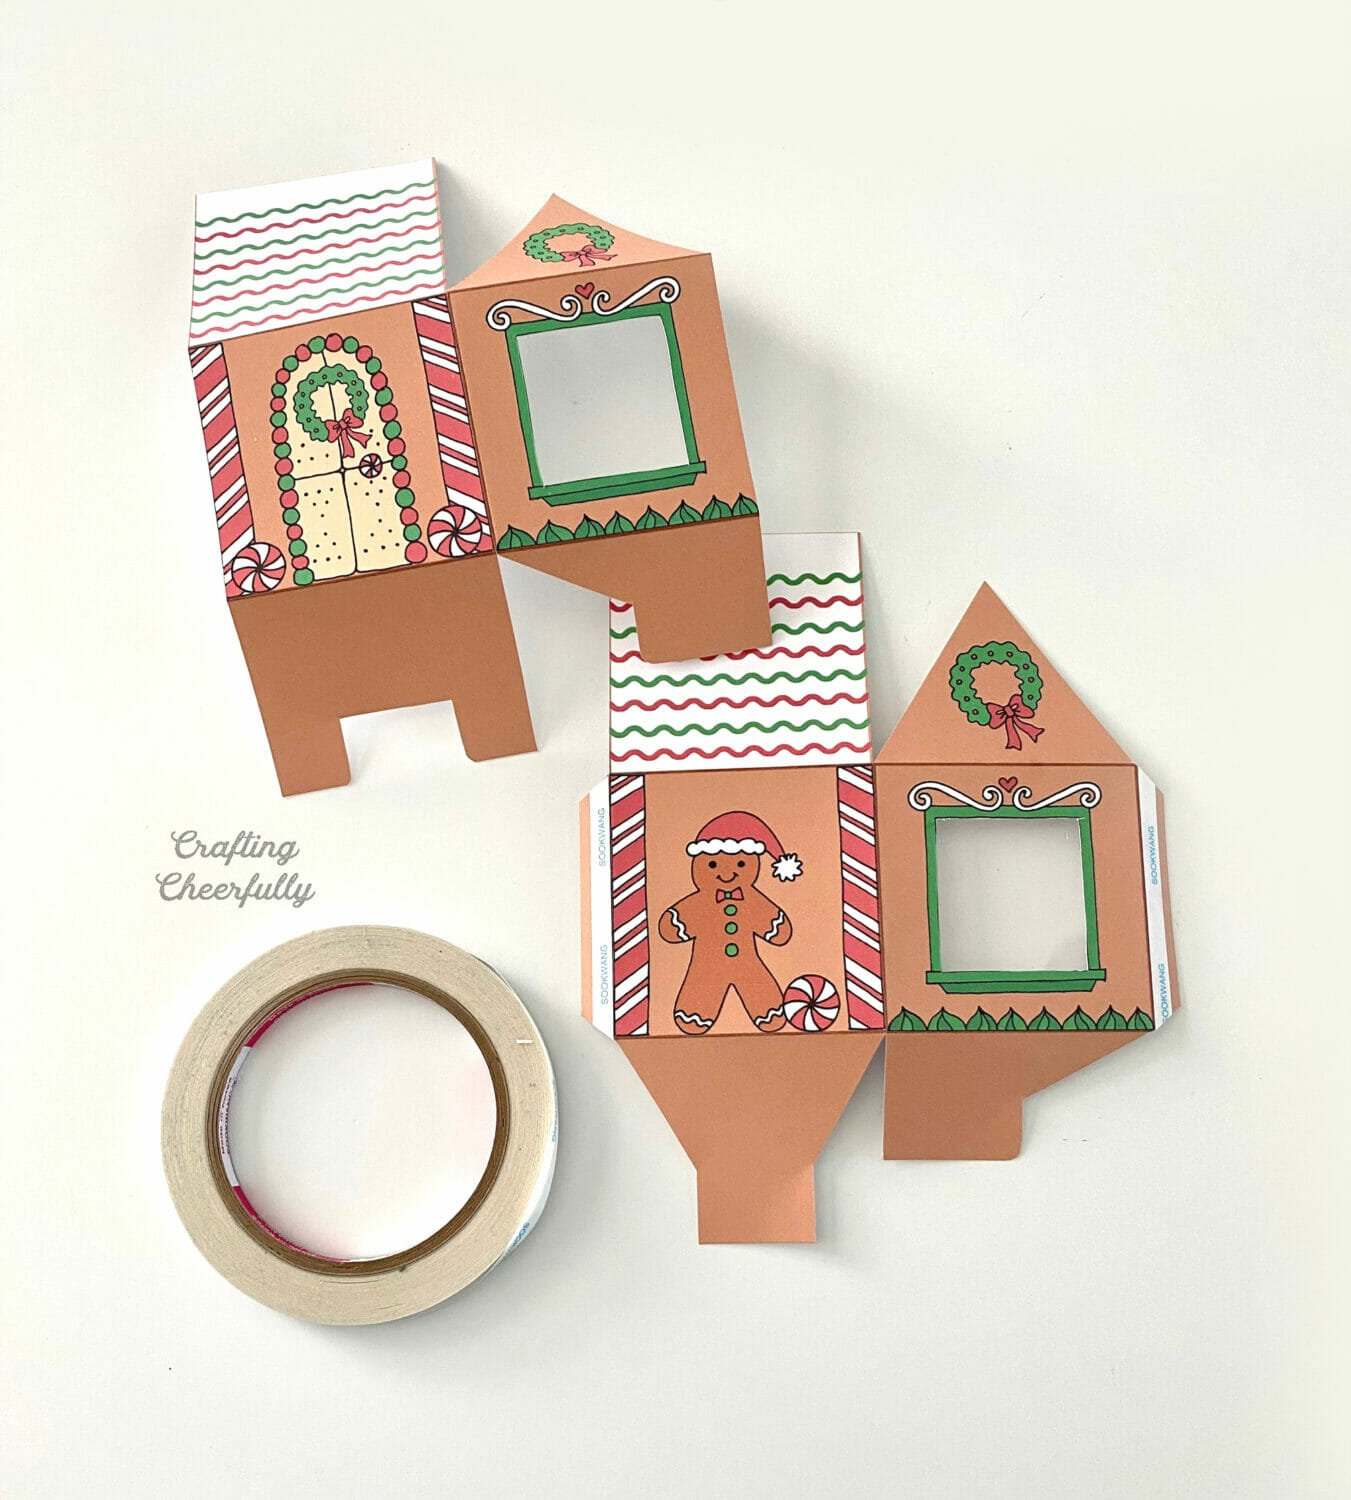 Gingerbread house treat boxes lay next to a roll of double-sided tape.